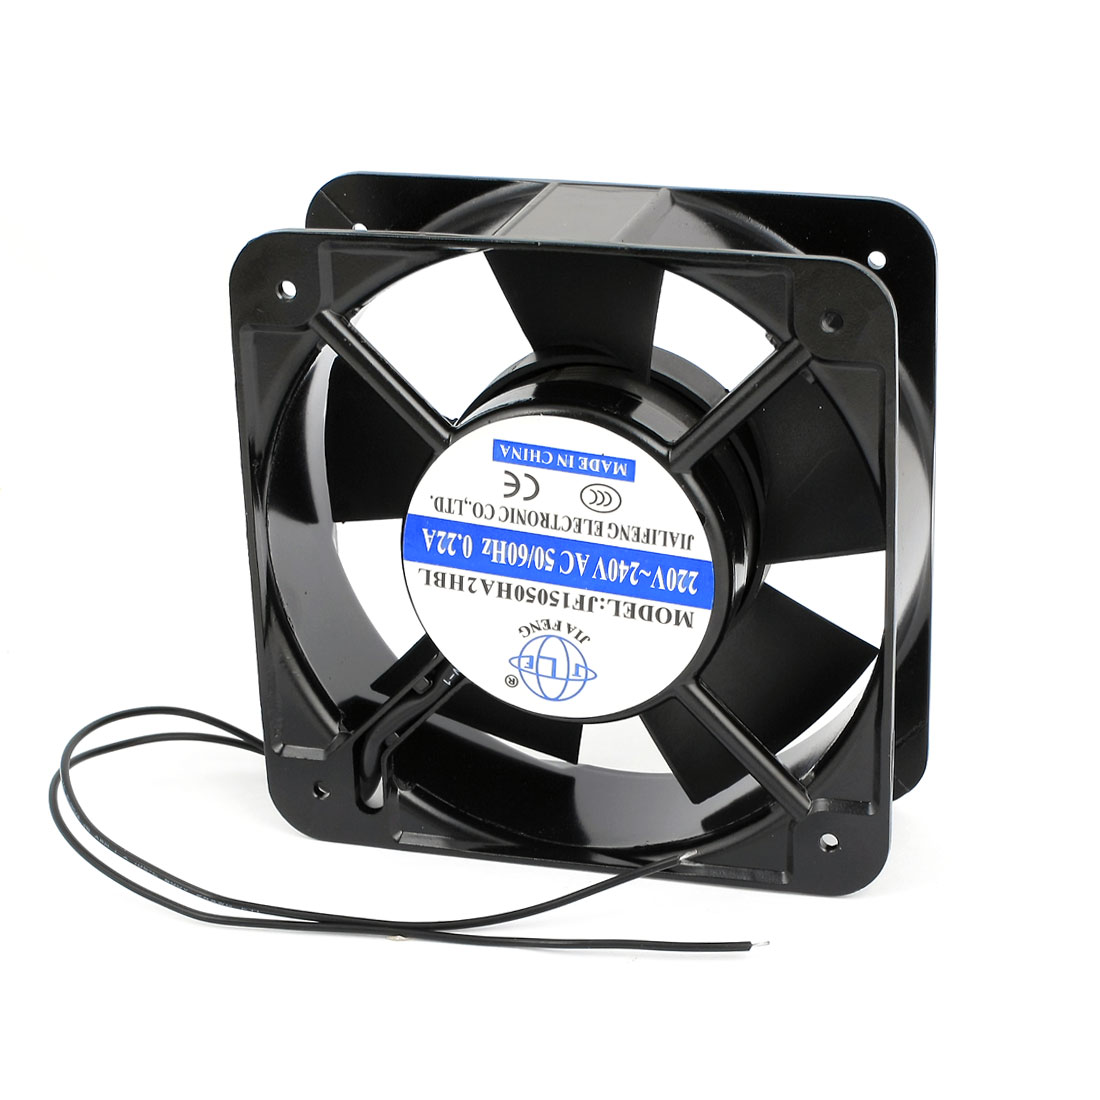 AC 220-240V 0.22A Ball Bearing Axial Cooling Fan 15cm x 15cm x 5.2cm